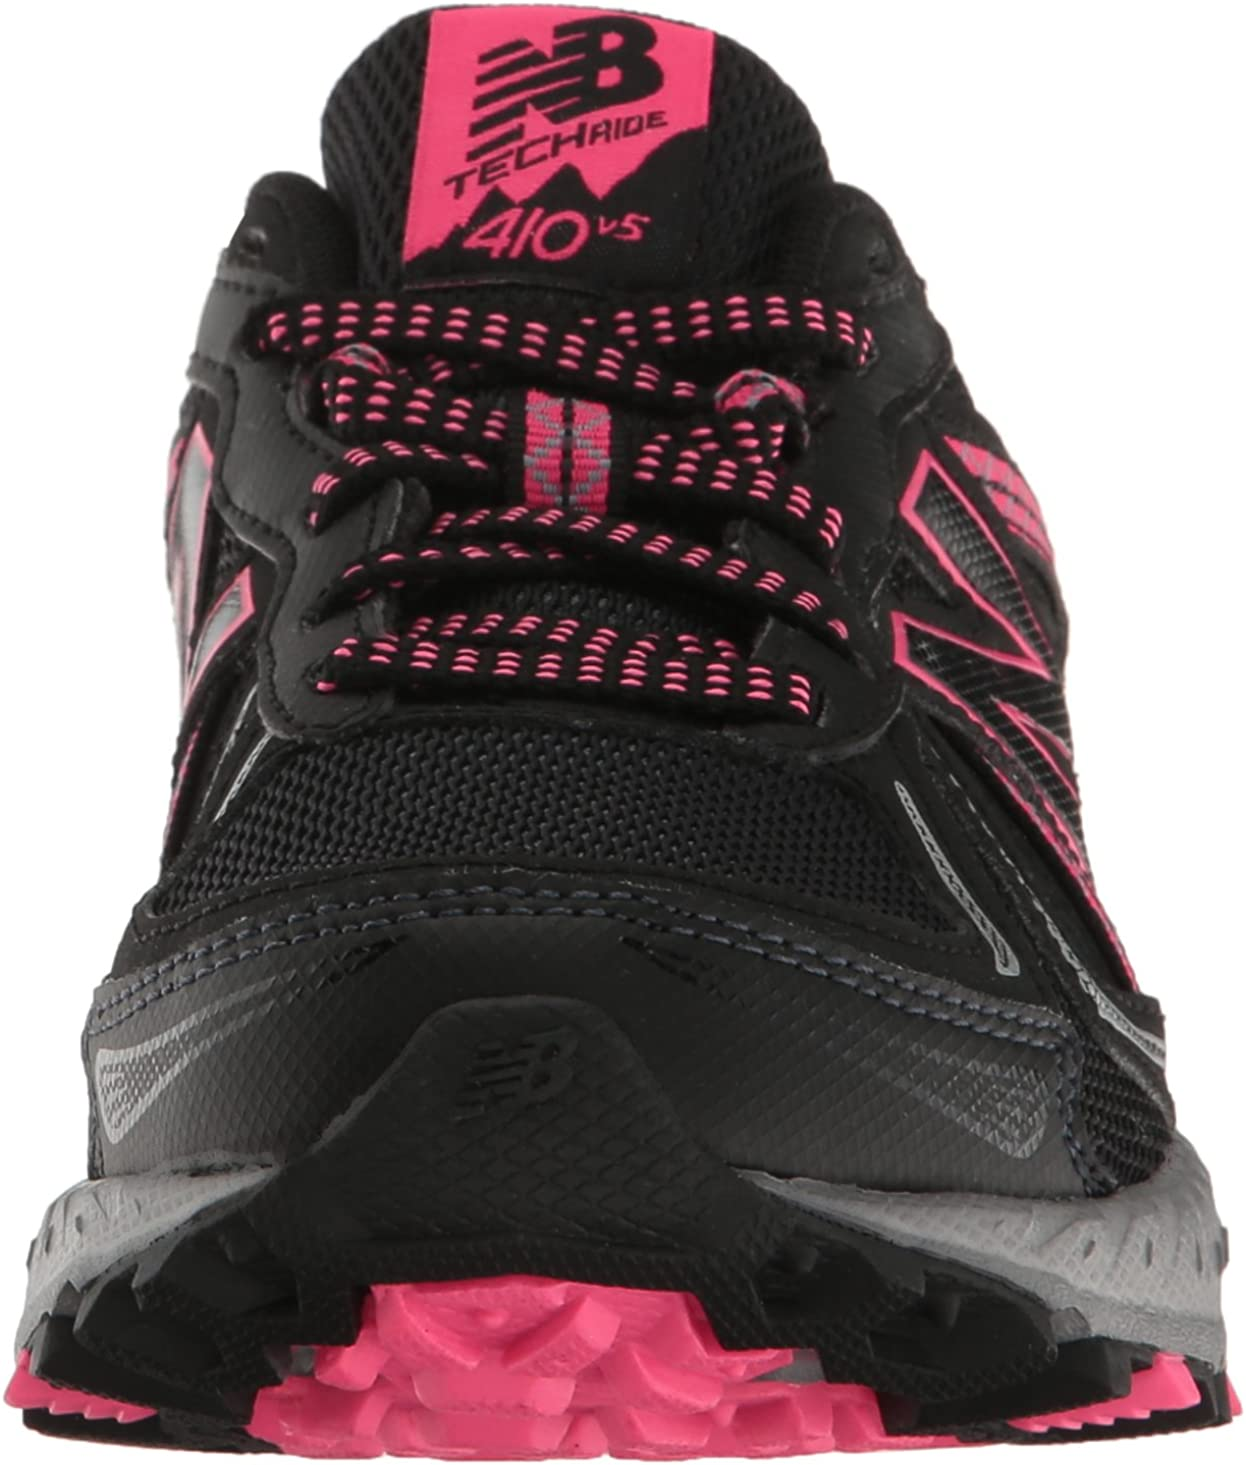 New Balance Women s WT410v5 Cushioning Trail Running Shoe